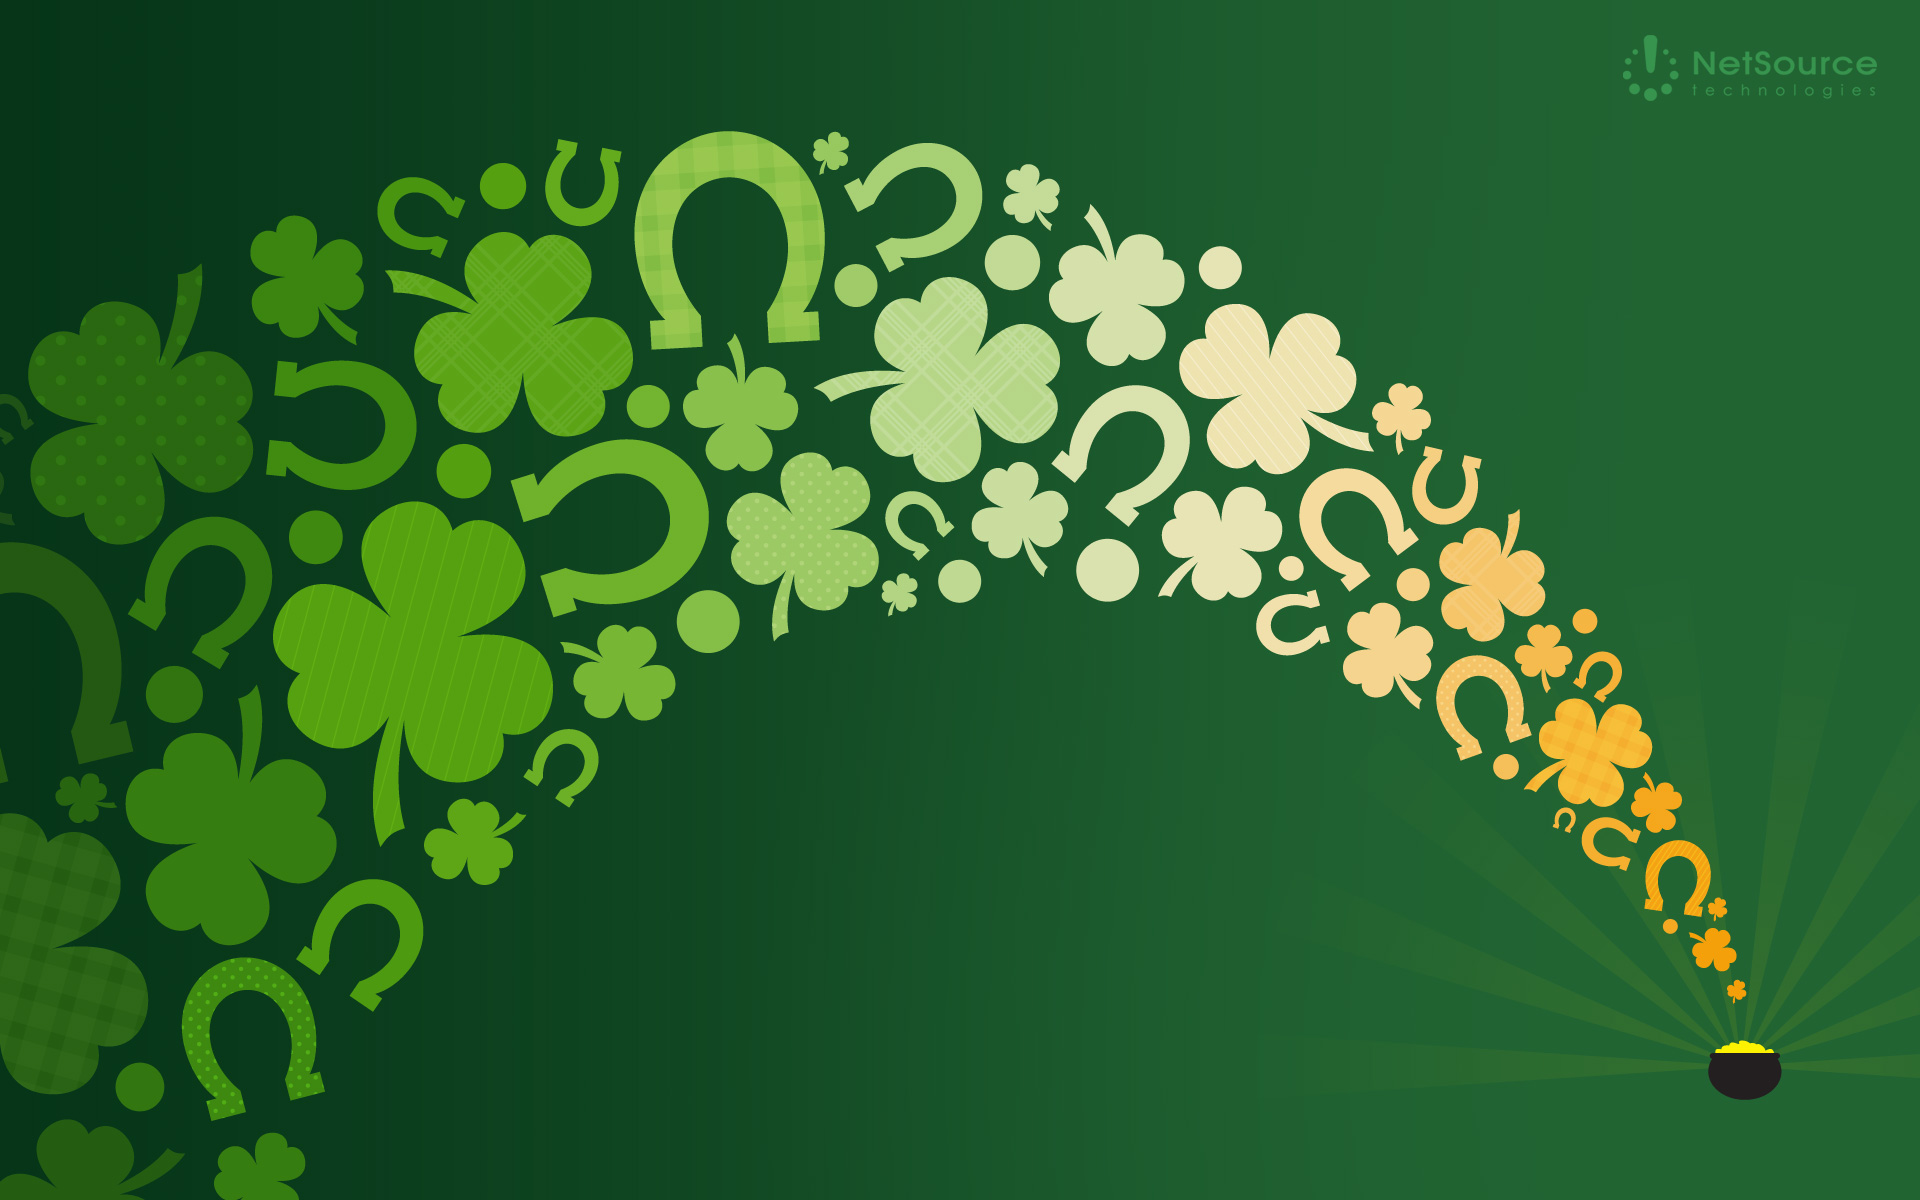 Free Download St Patricks Day Wallpaper Is All About The